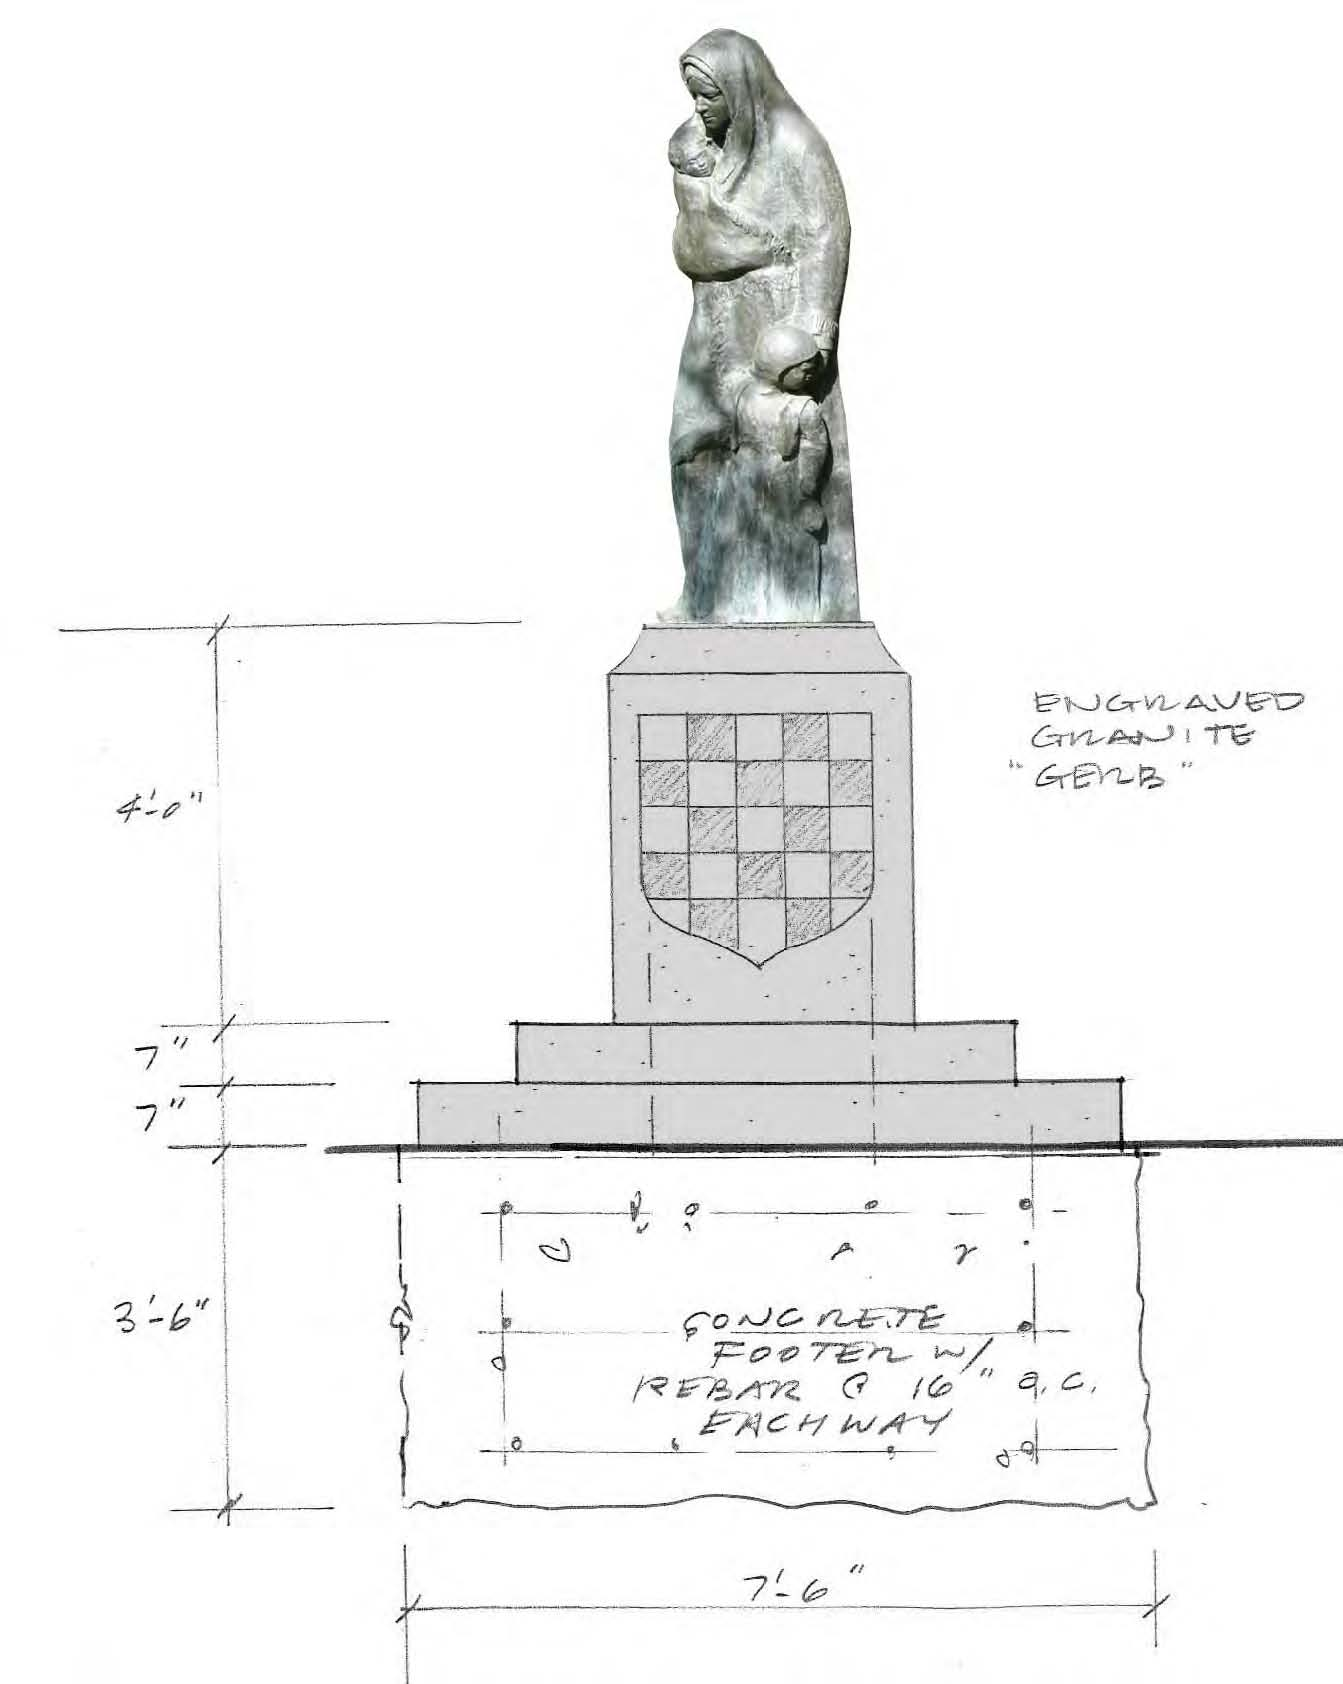 Diagram of Immigrant Mother Sculpture on Stone Base with Grb